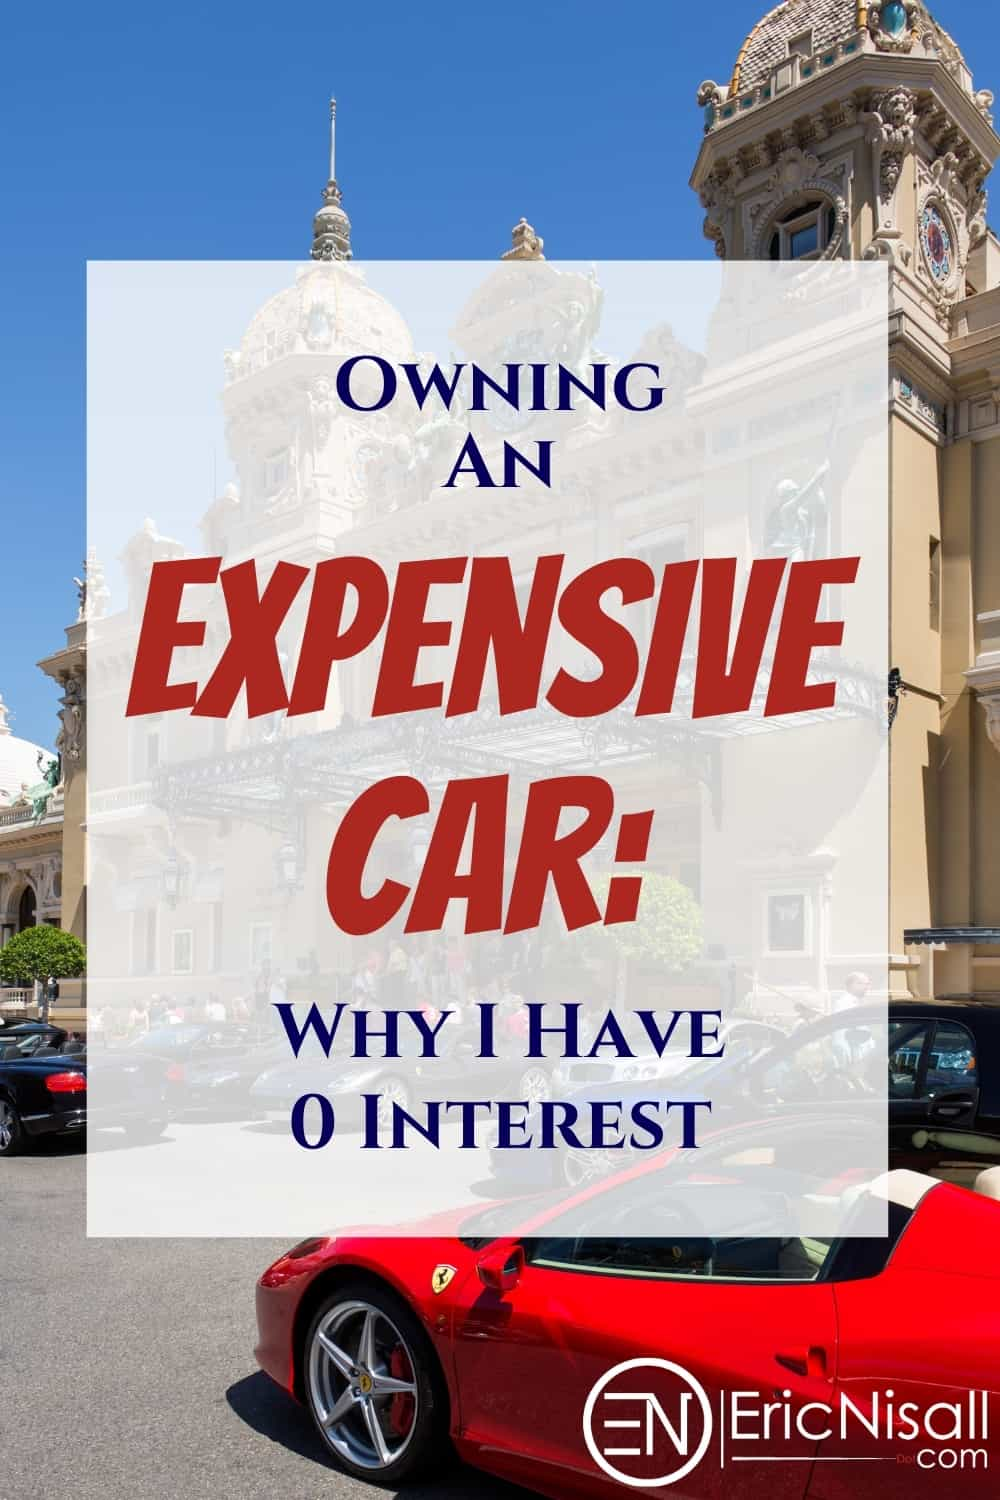 Expensive car as a status symbol? Cars as signs of financial wealth? Sorry, I don't buy it (no pun intended). To me a car is a way to get to where I'm going, and nothing more. via @ericnisall